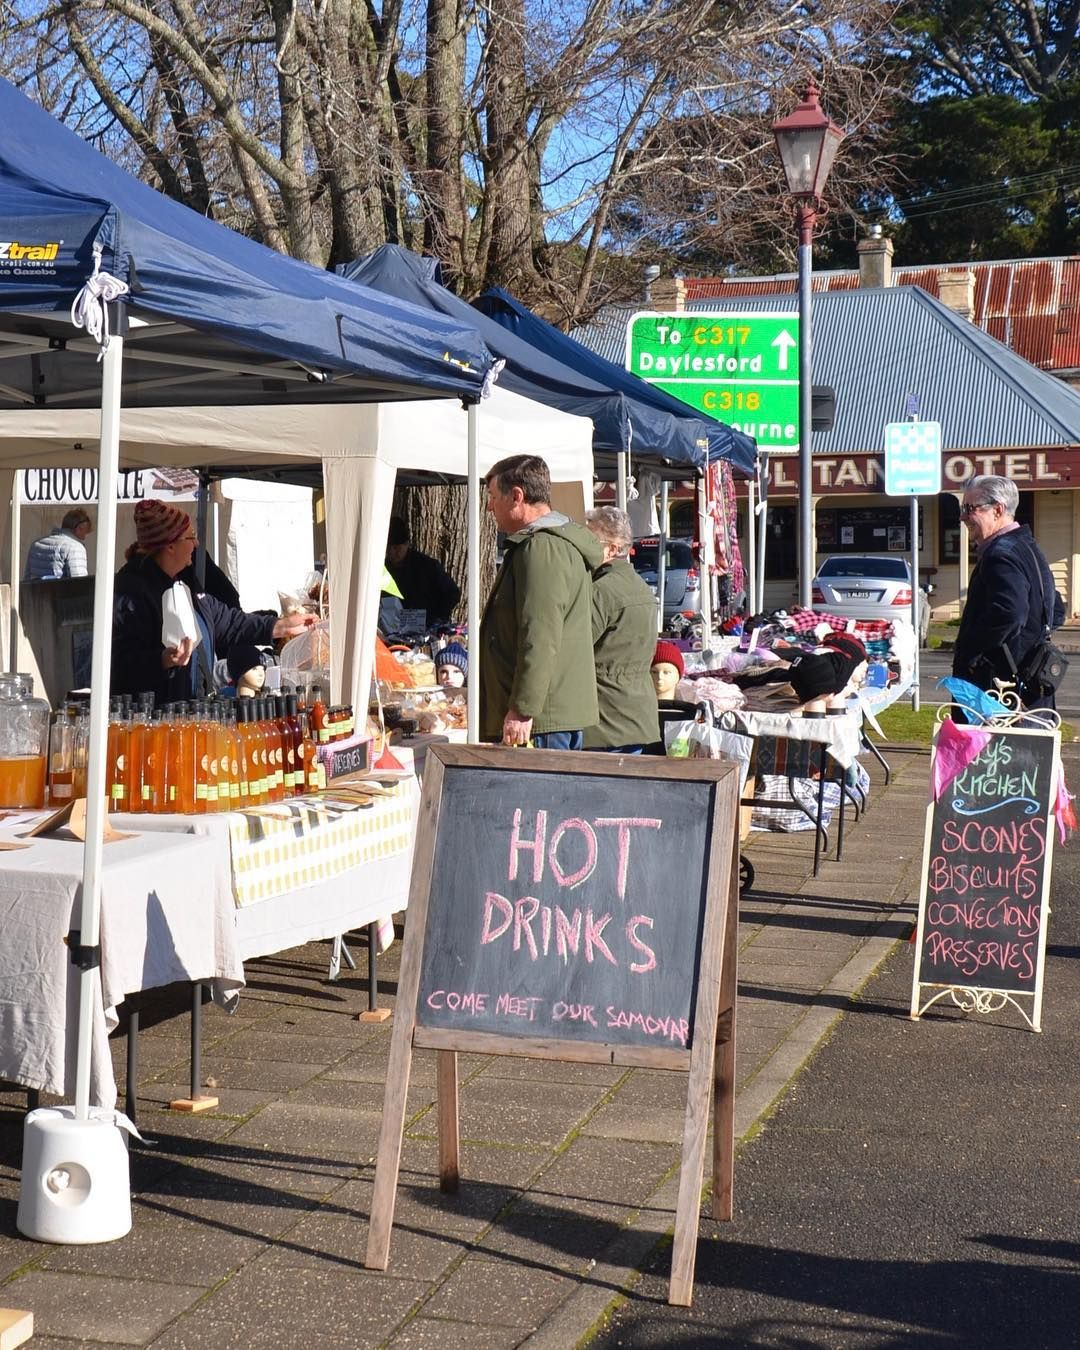 Trentham Farmers Market tomorrow. Fabulous produce and locally made goods. Open from 9am to 1pm in the town center. . . . : @turnaroundhere.com.au #trentham #trenthamvictoria #trenthamfarmersmarket #farmersmarket #visittrentham #visitdaylesford #visitvictoria #visitmacedonranges #localproduce #supportlocal #markettime #weekendgetaway #weekendmarket